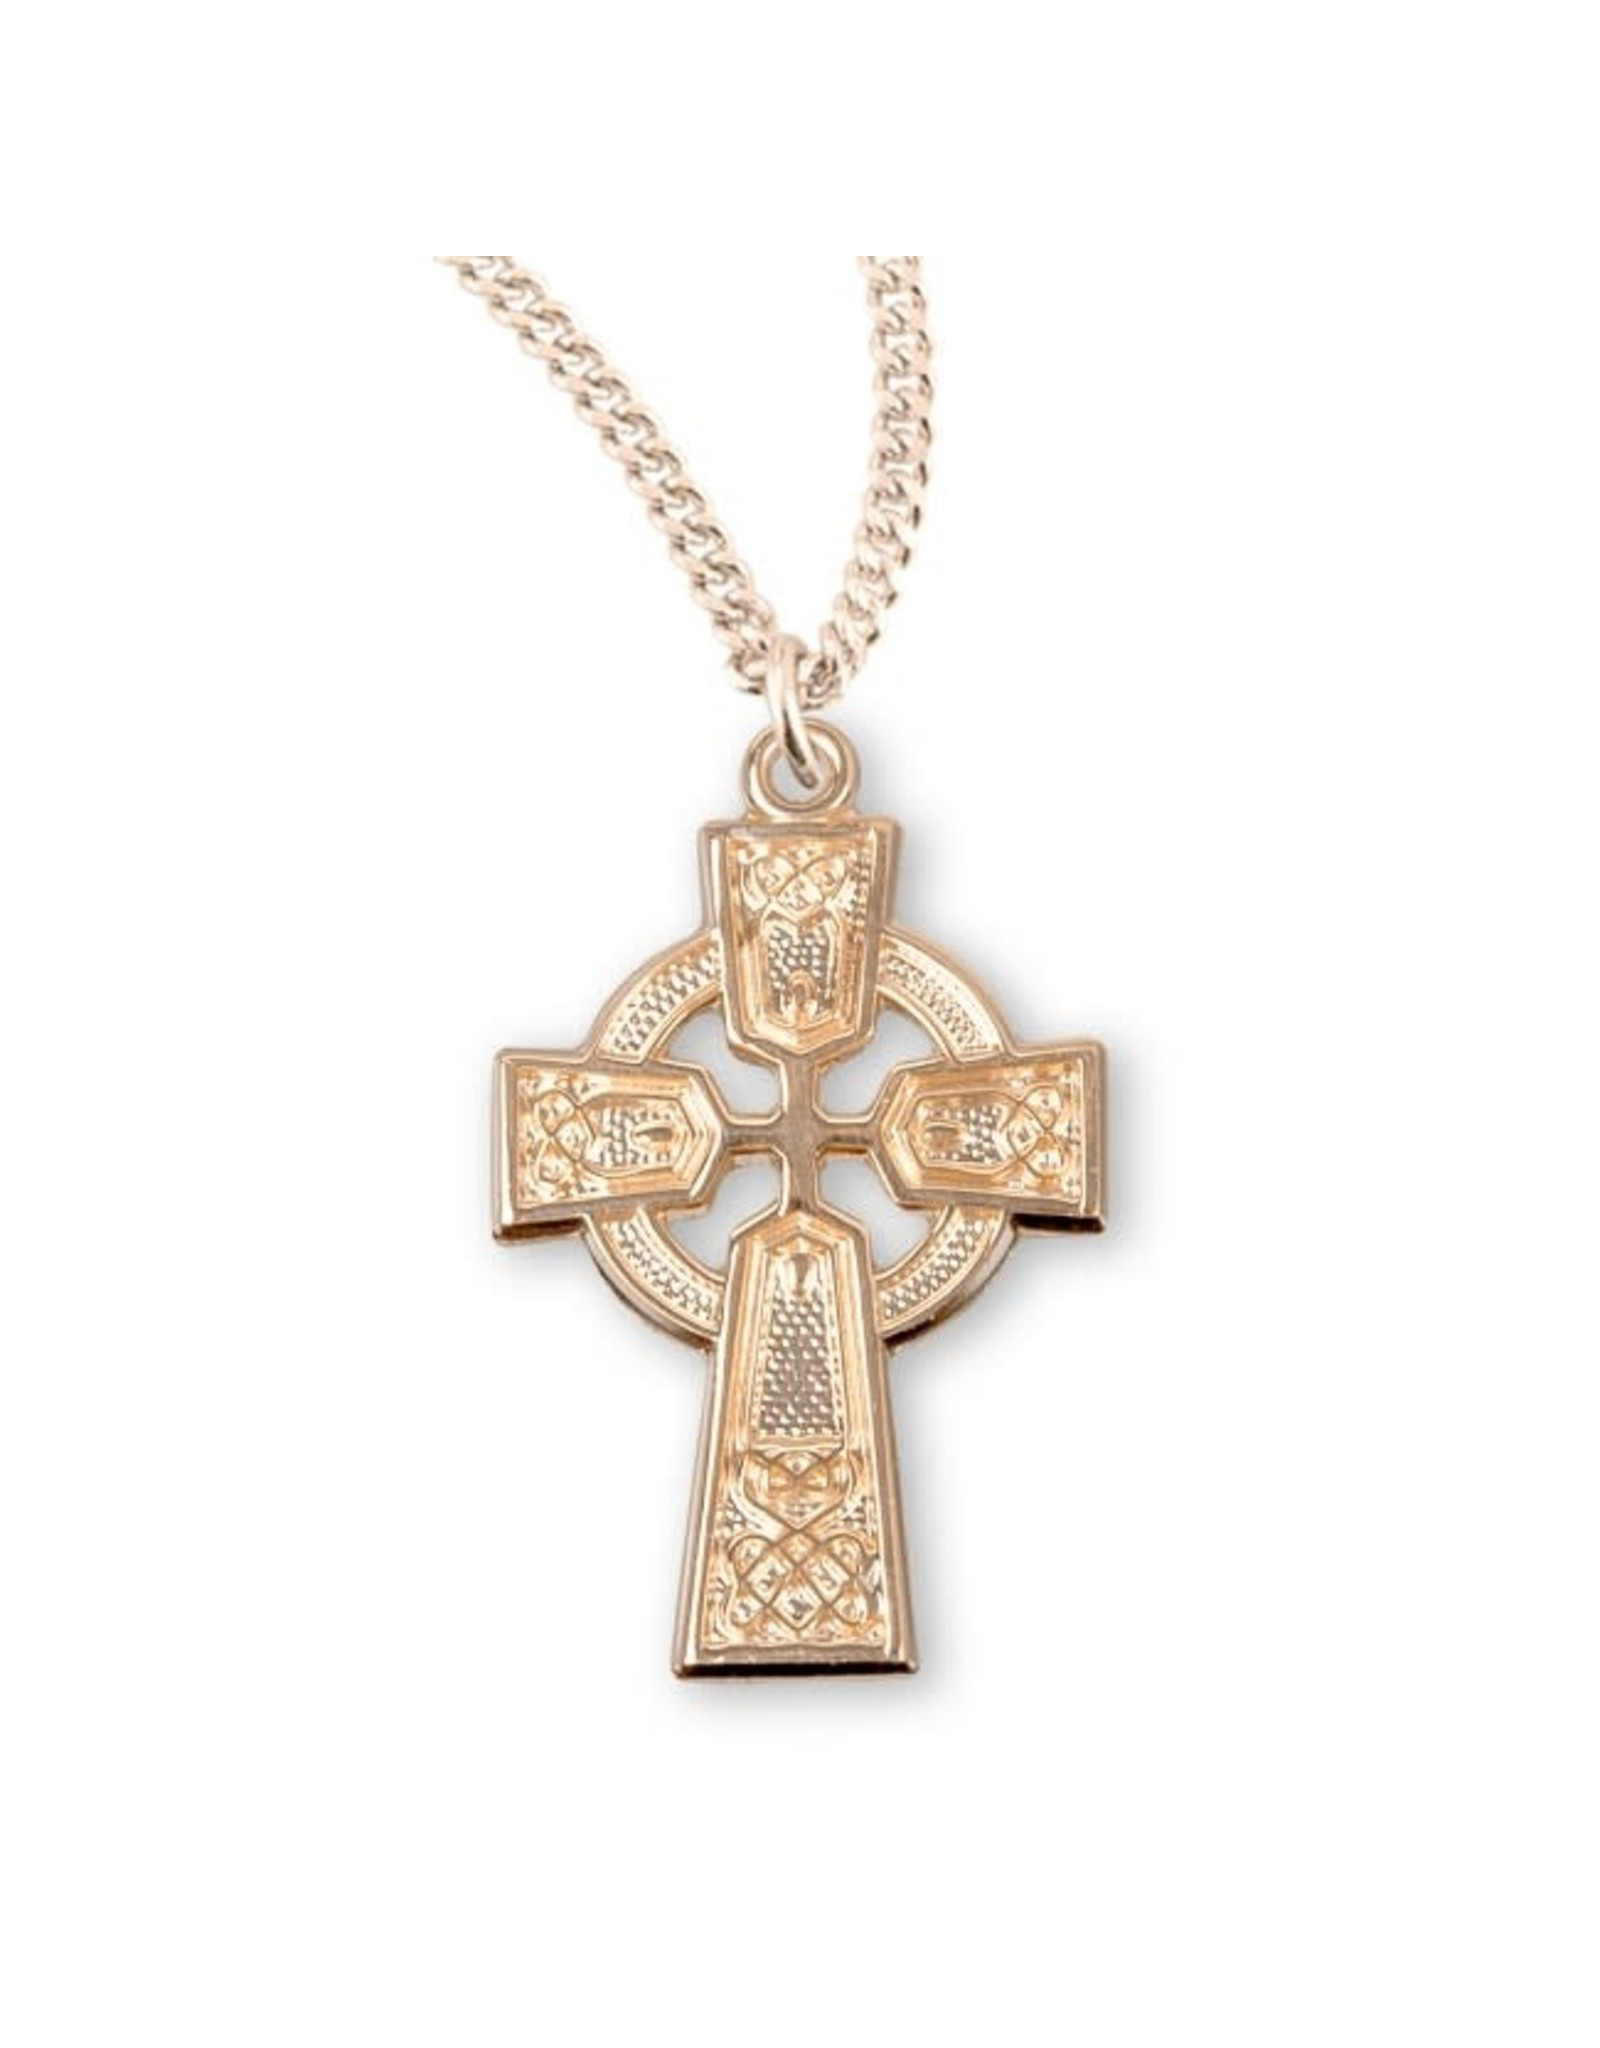 """HMH 16 Karat Gold over Sterling Silver Celtic Knot Cross on 18"""" Chain, Boxed"""